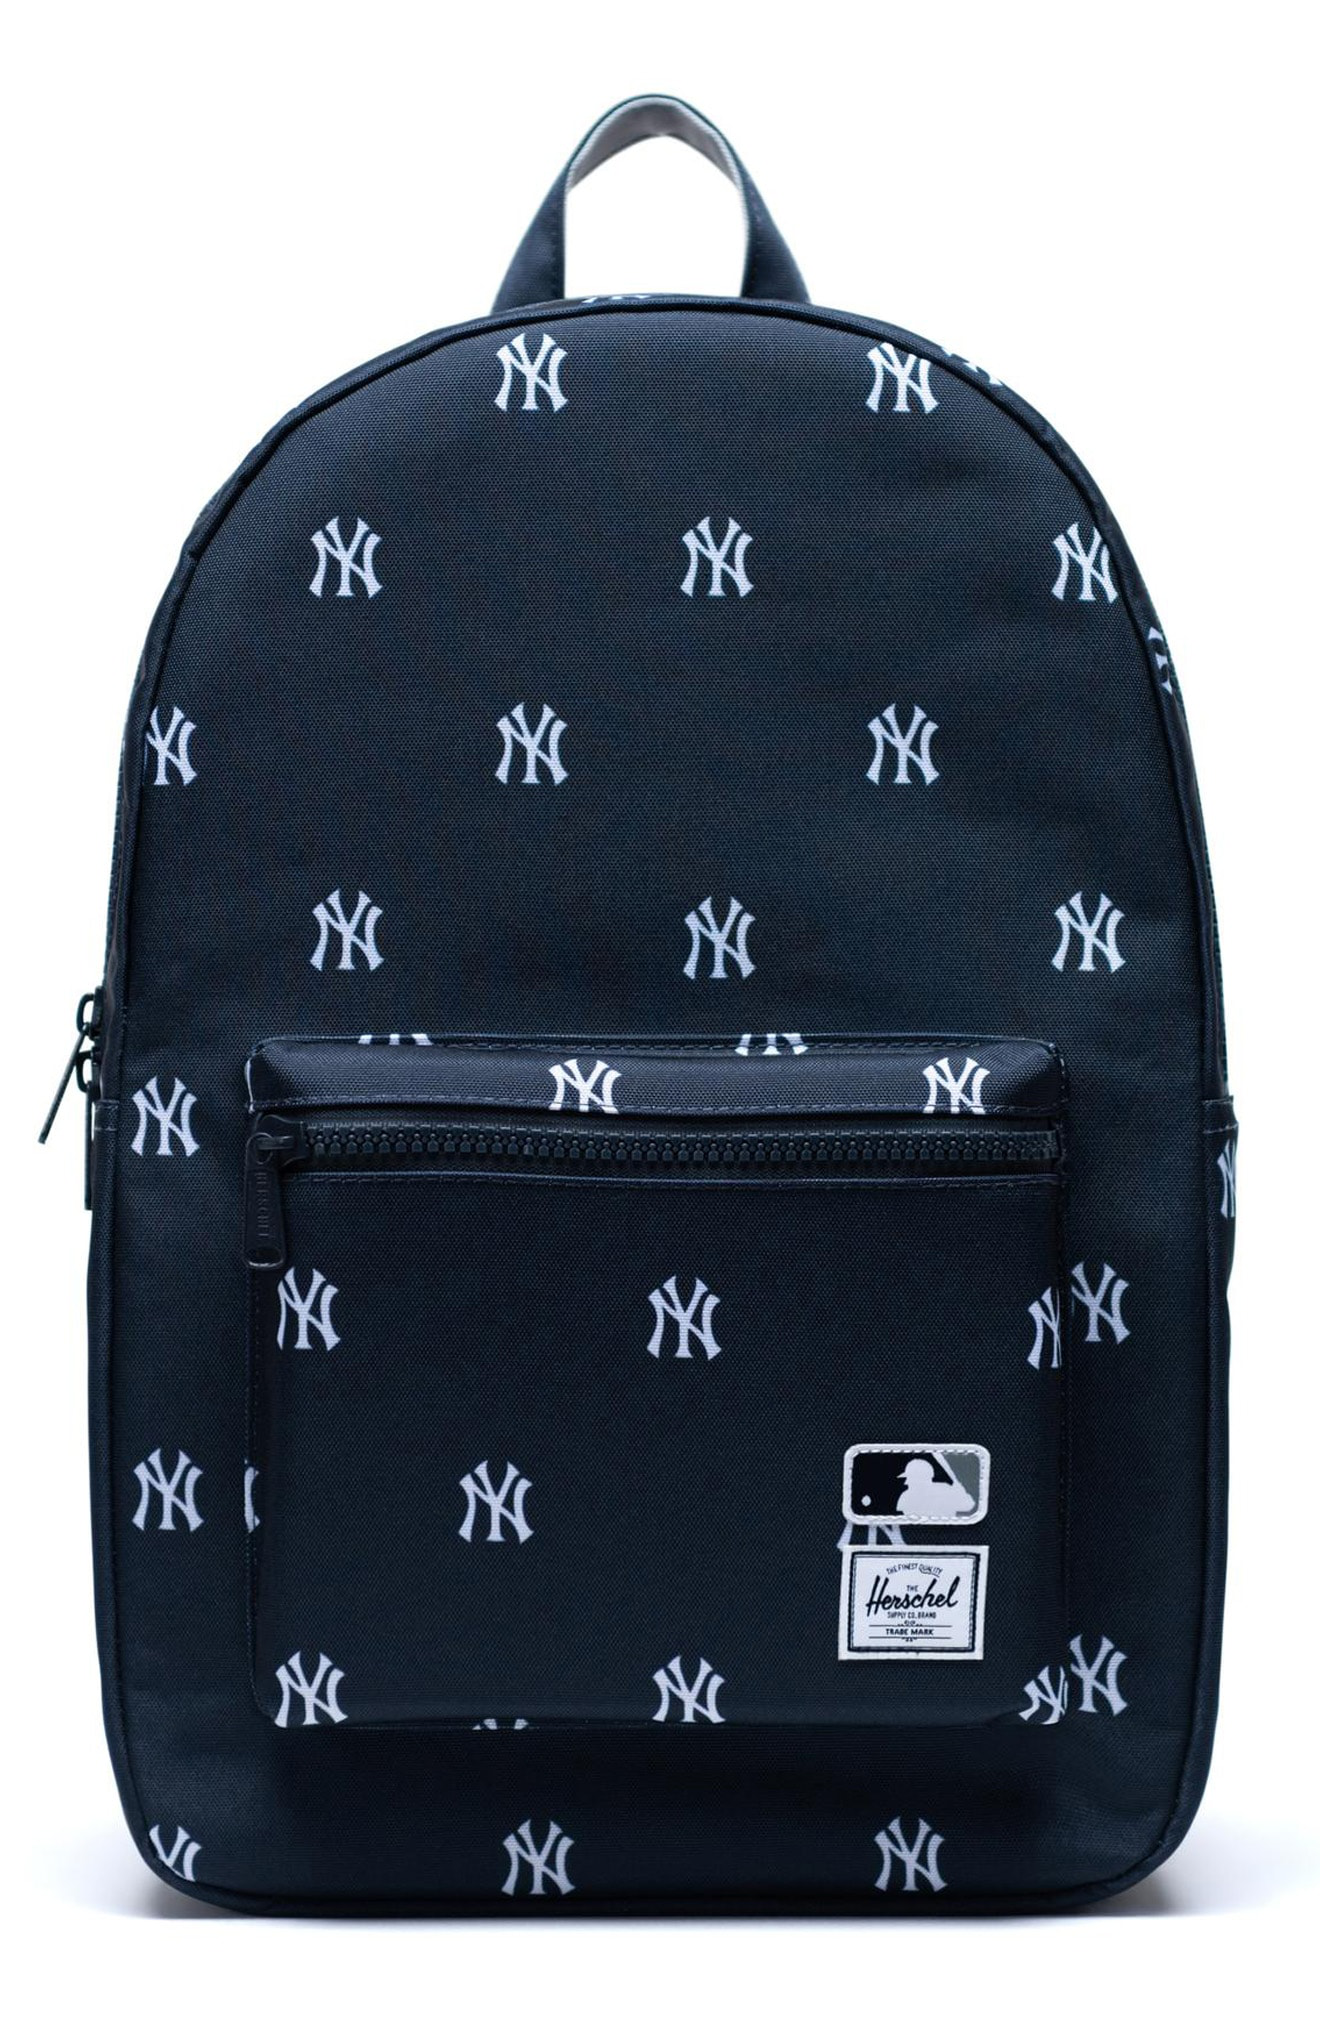 bab454ee43 Herschel Supply Co. Settlement - Mlb Outfield Backpack In New York Yankees